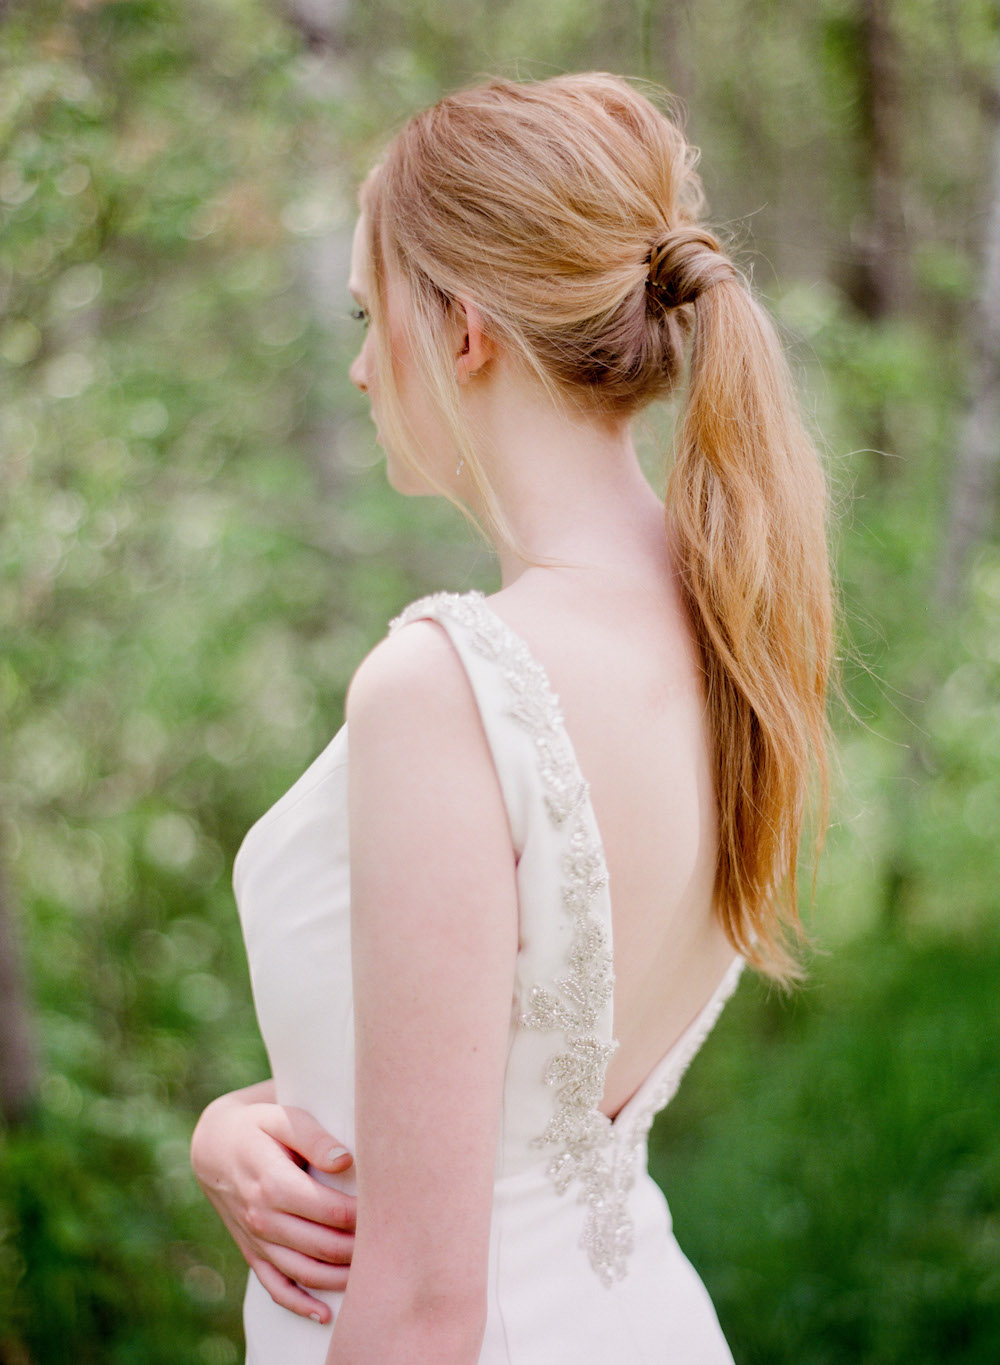 Ponytail Ideas for Wedding Day - Bridal Hair